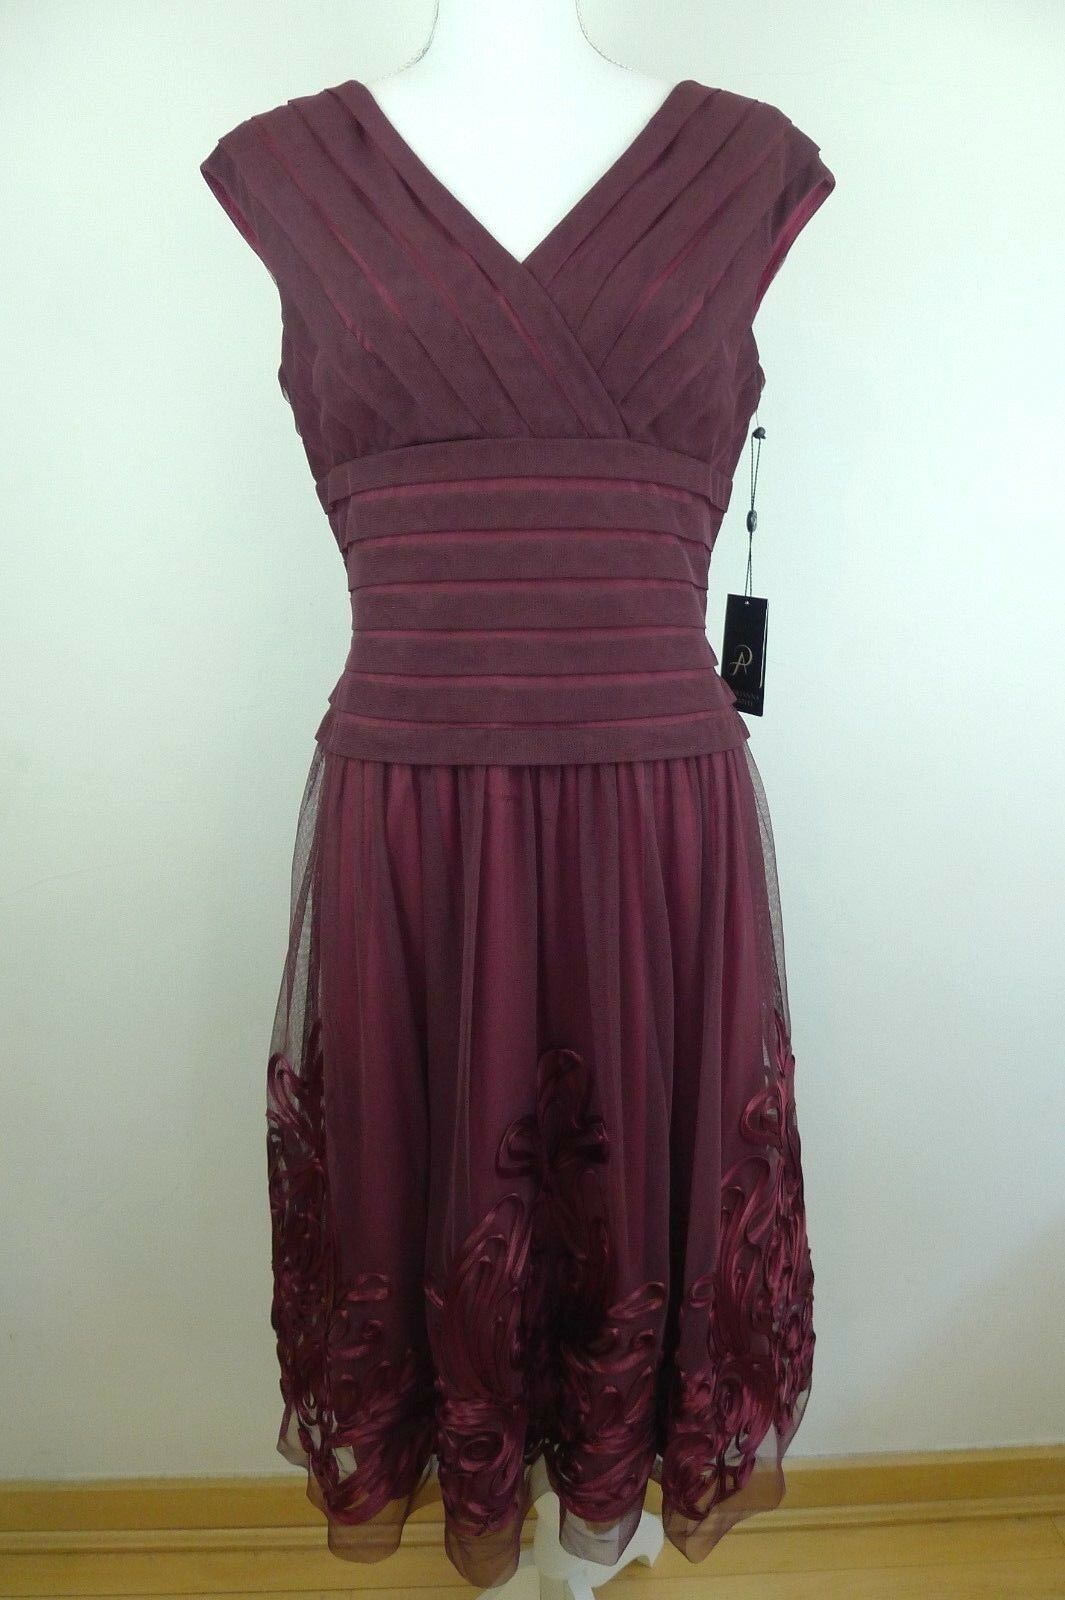 Adrianna Papell Women's Purple-Red Applique Dress Size 8